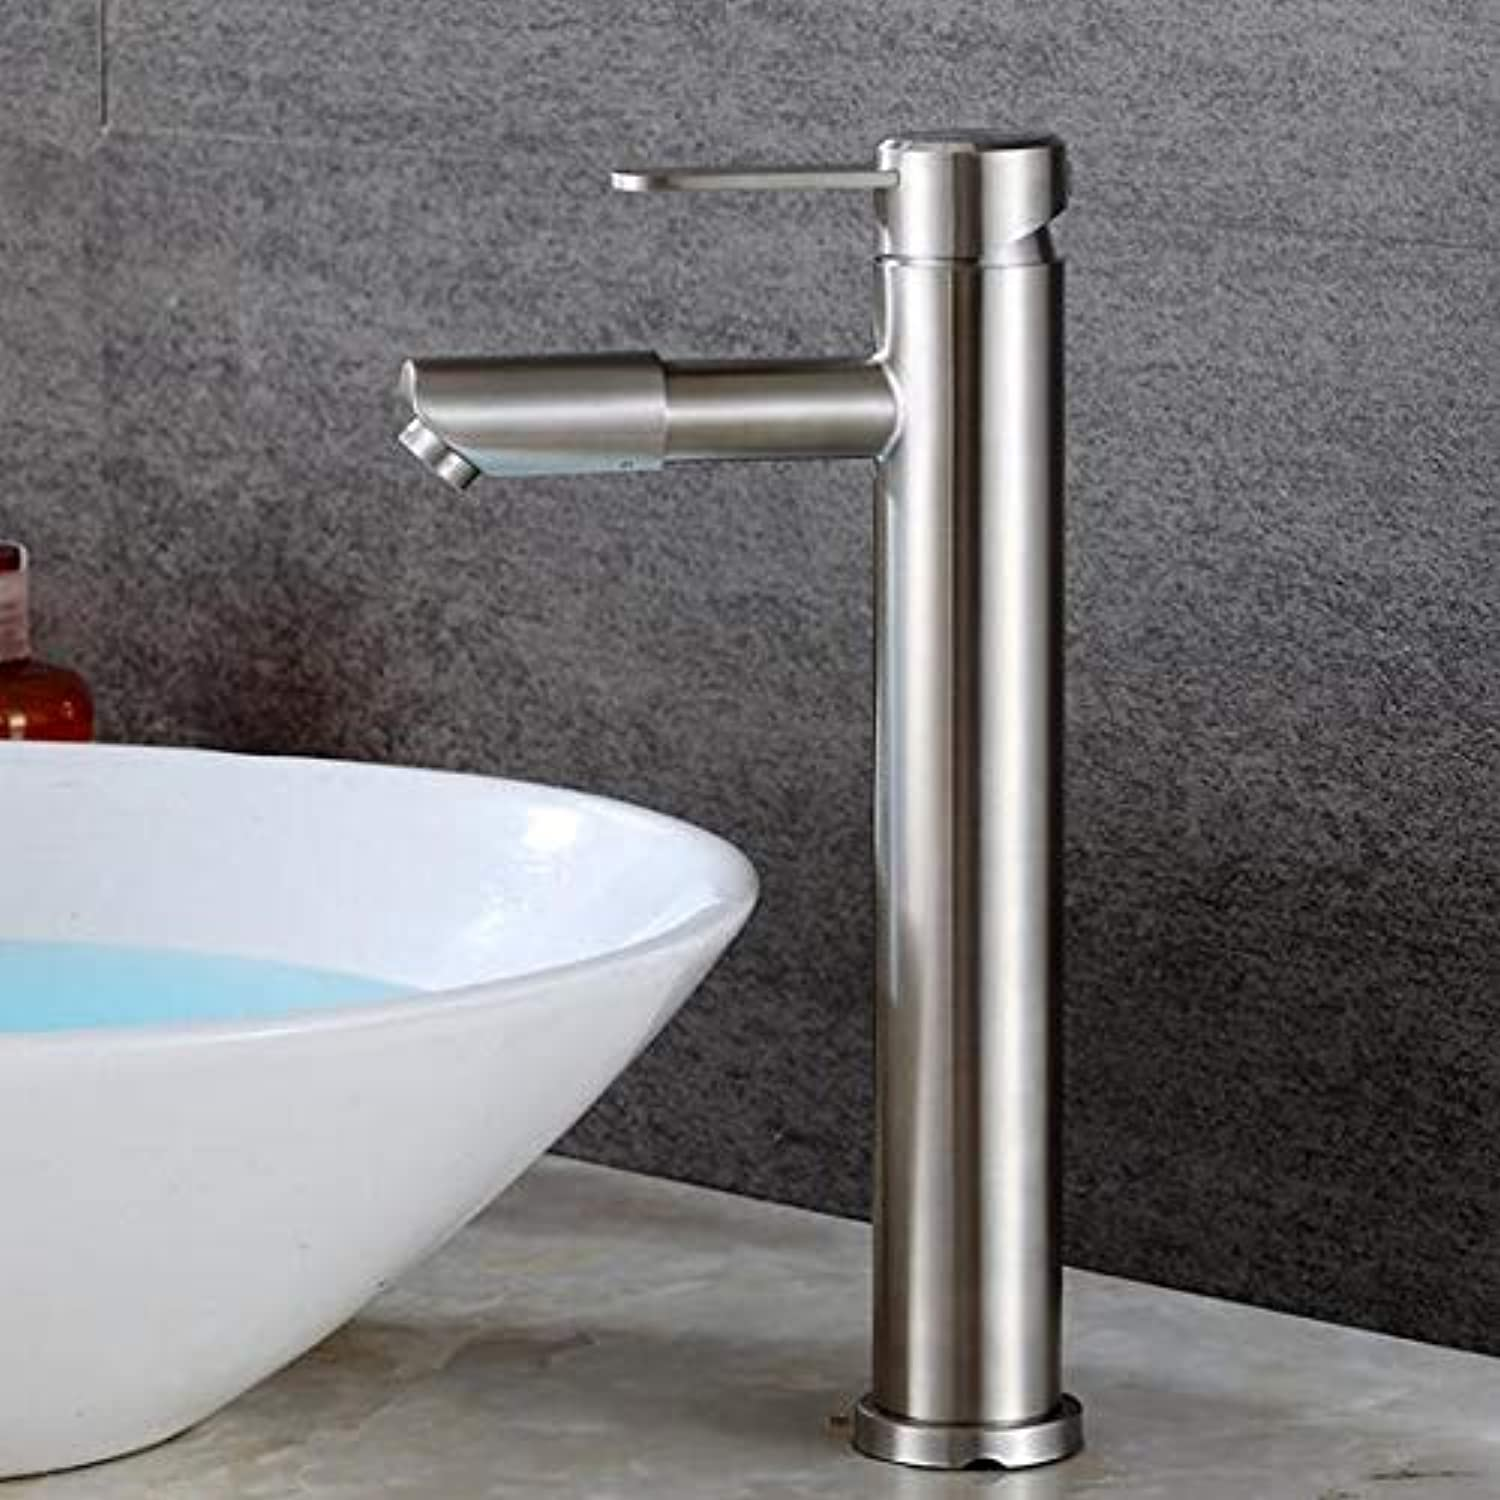 Mkkwp 304 Stainless Steel Turn Bathroom Basin Faucet Sink Basin Wash Tap Hot and Cold Single Hole Height Increase Faucet